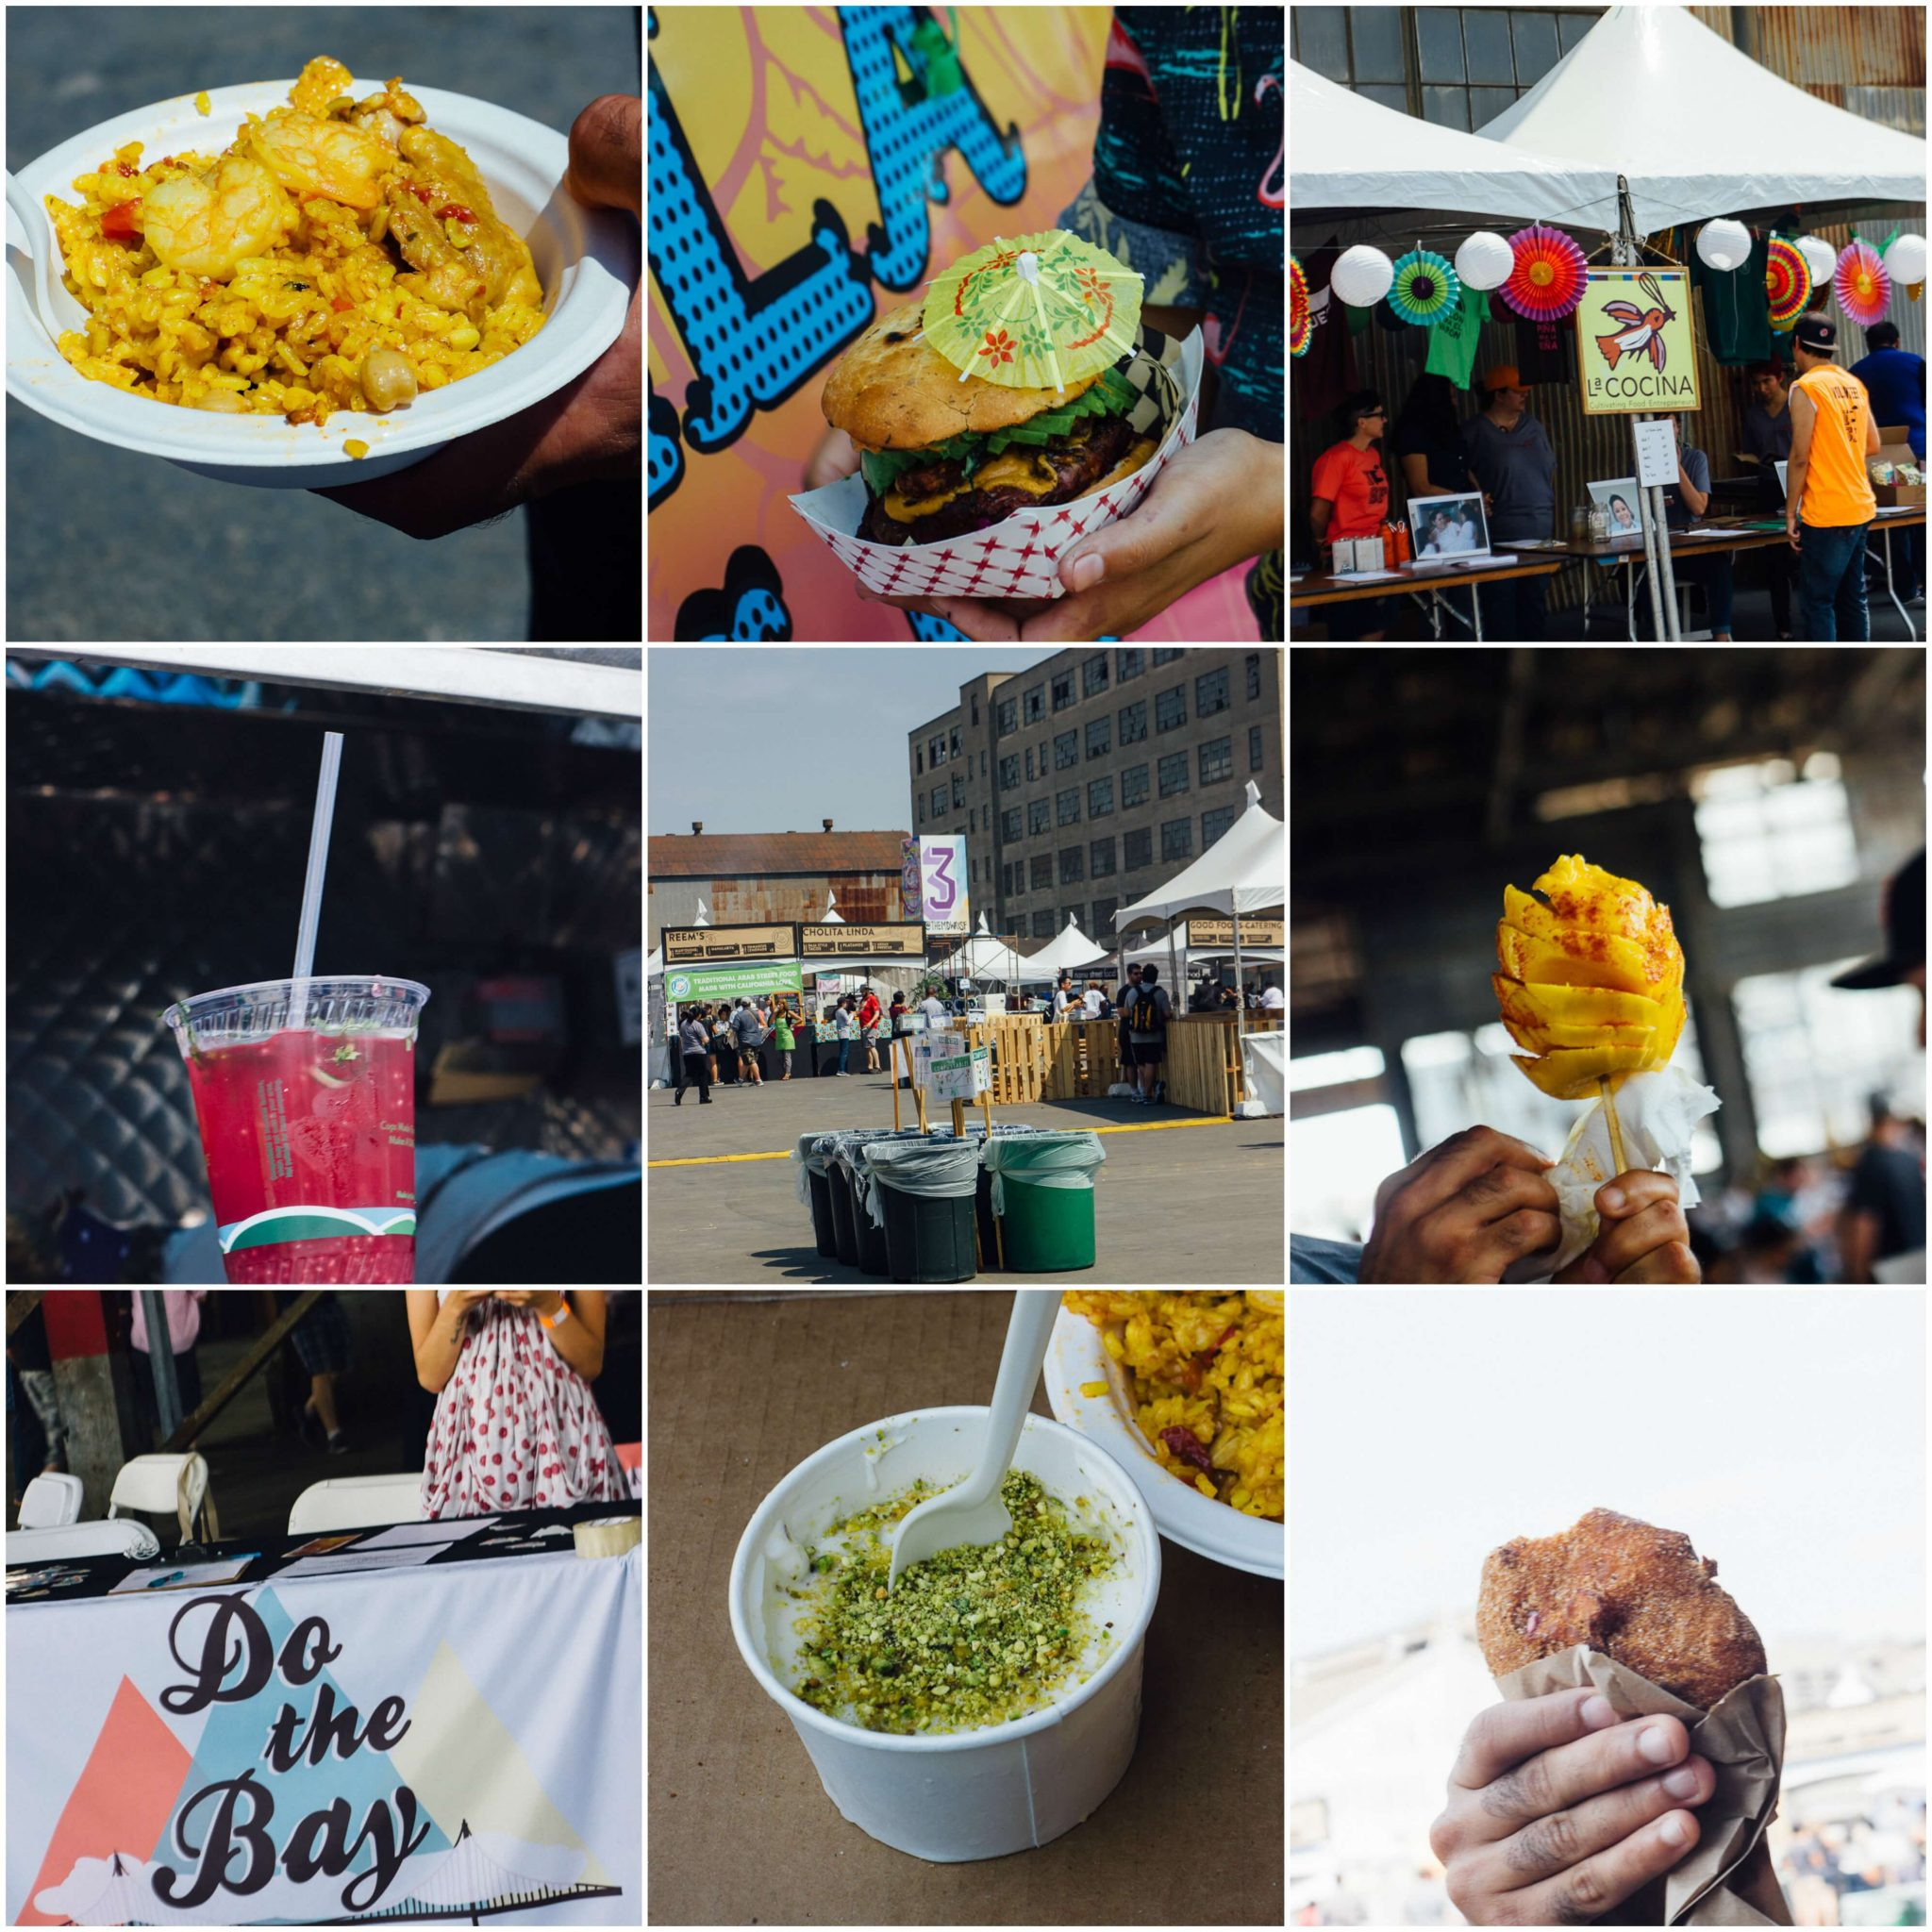 Food festivals in San Francisco are a great foodie experience